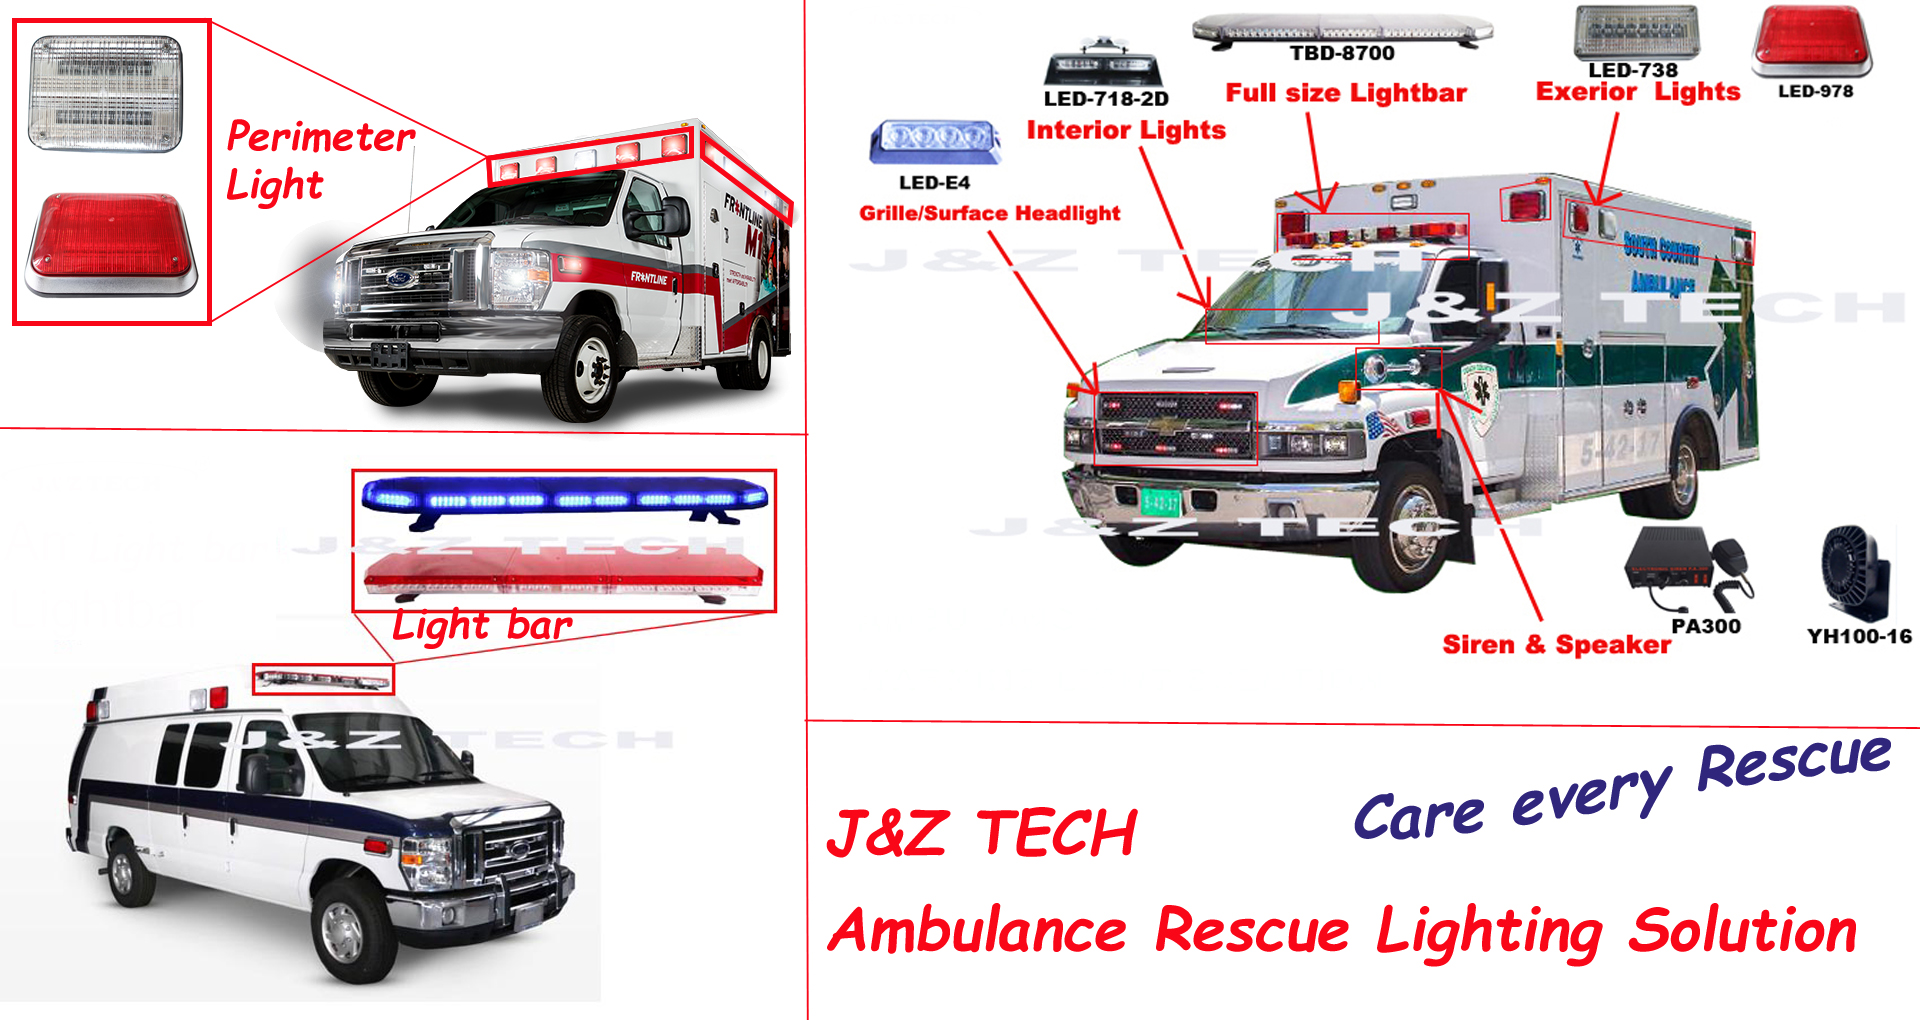 ambulance lighting solutions.jpg